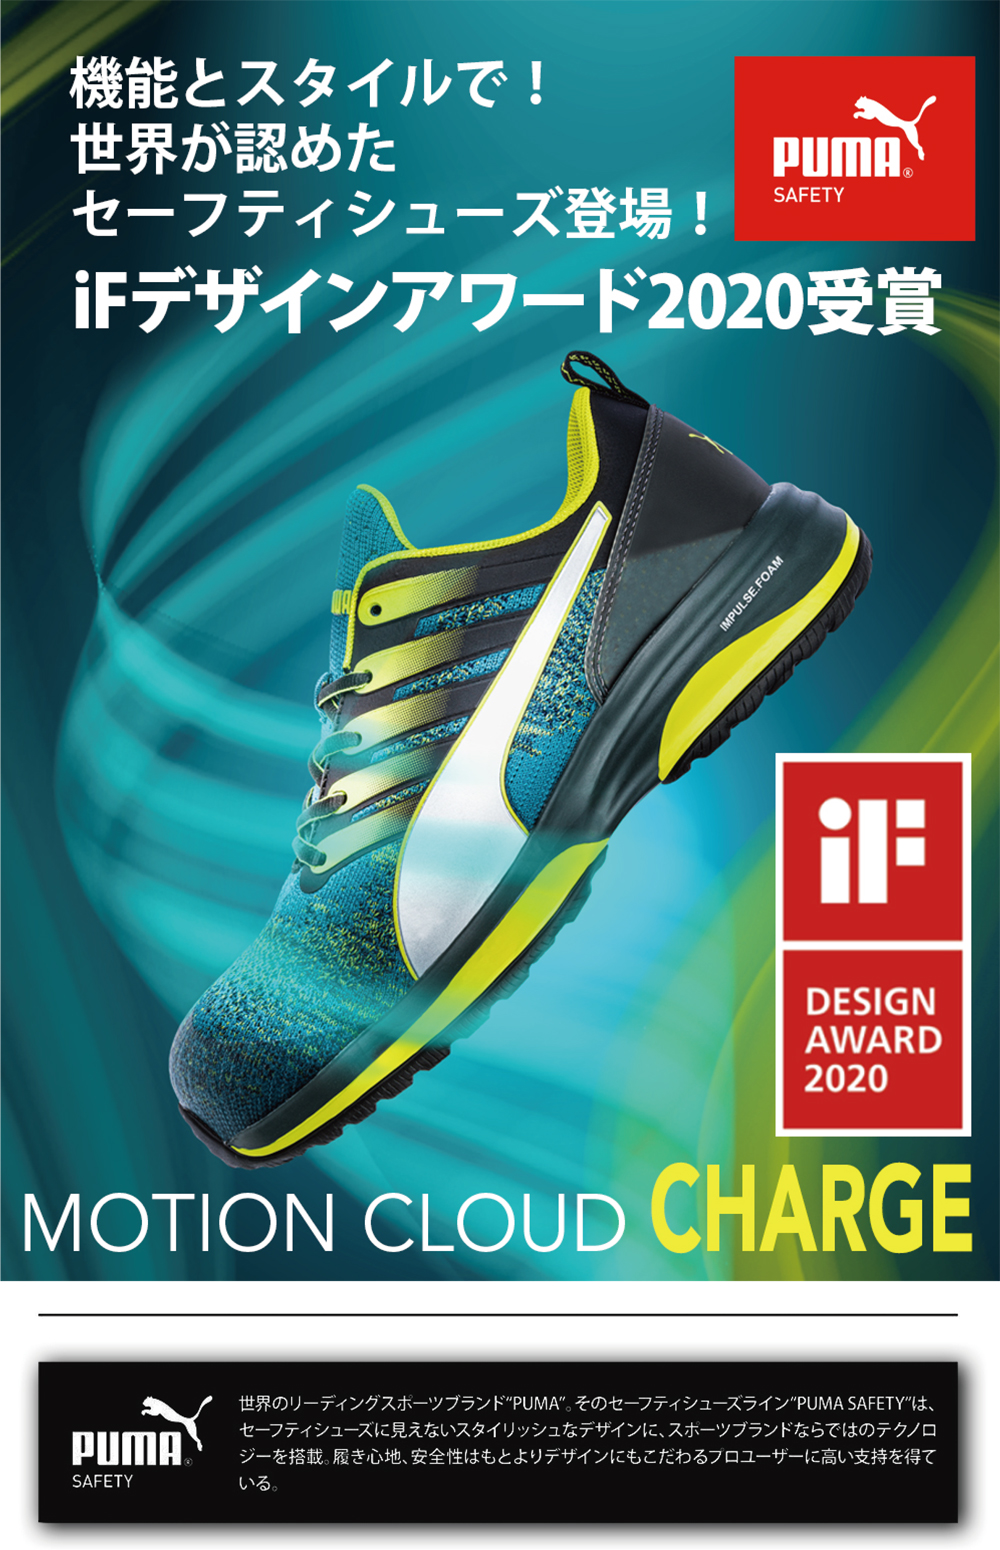 PUMA SAFETY MOTION CLOUD CHARGE